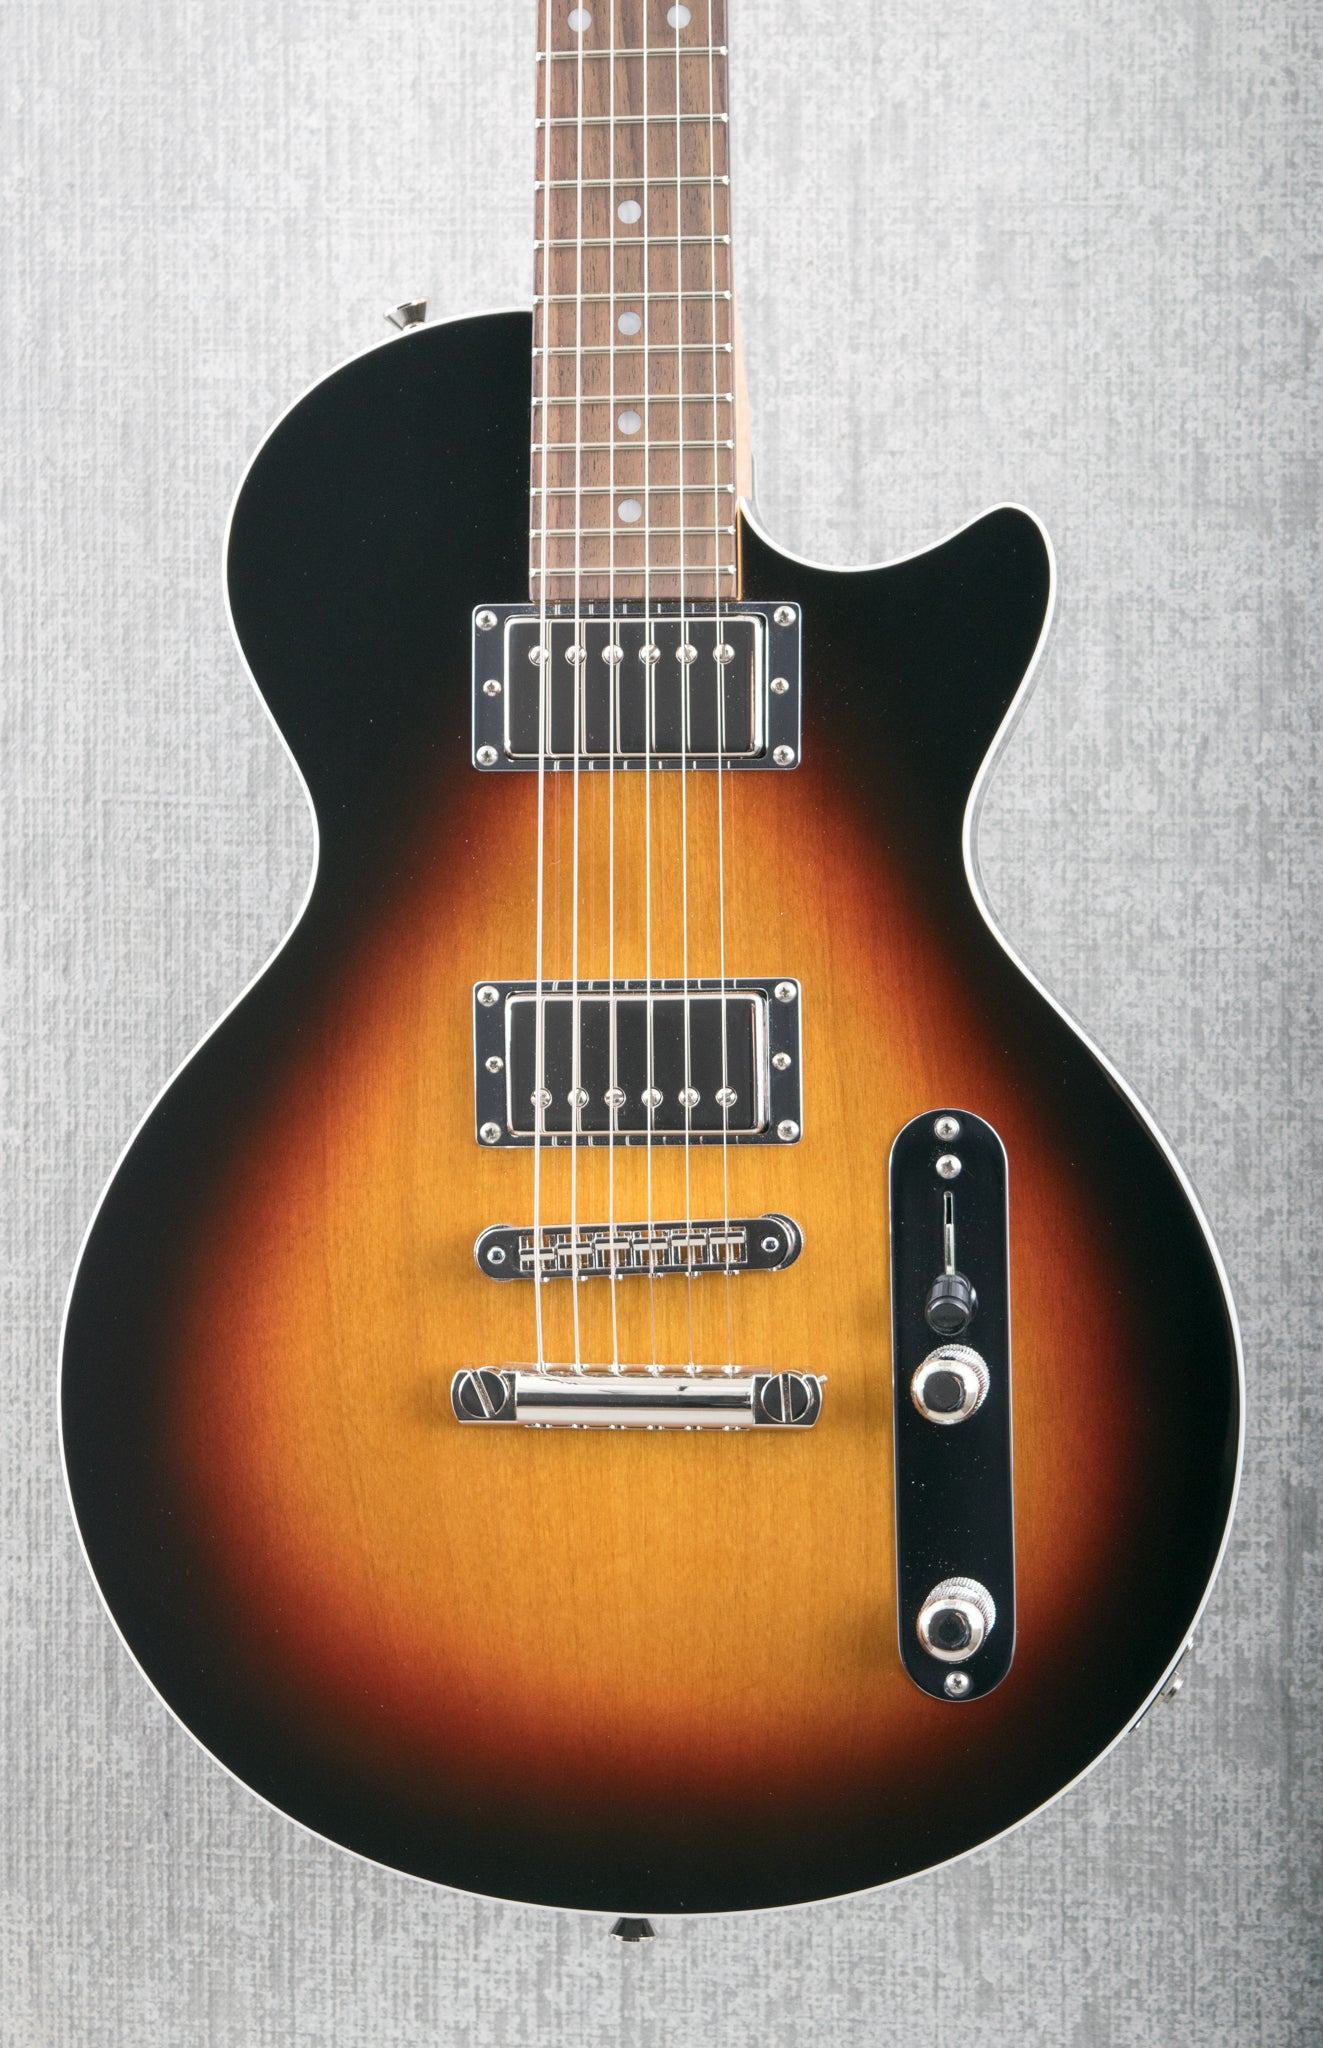 Fano SP6 Alt De Facto 3 Tone Tobacco Sunburst